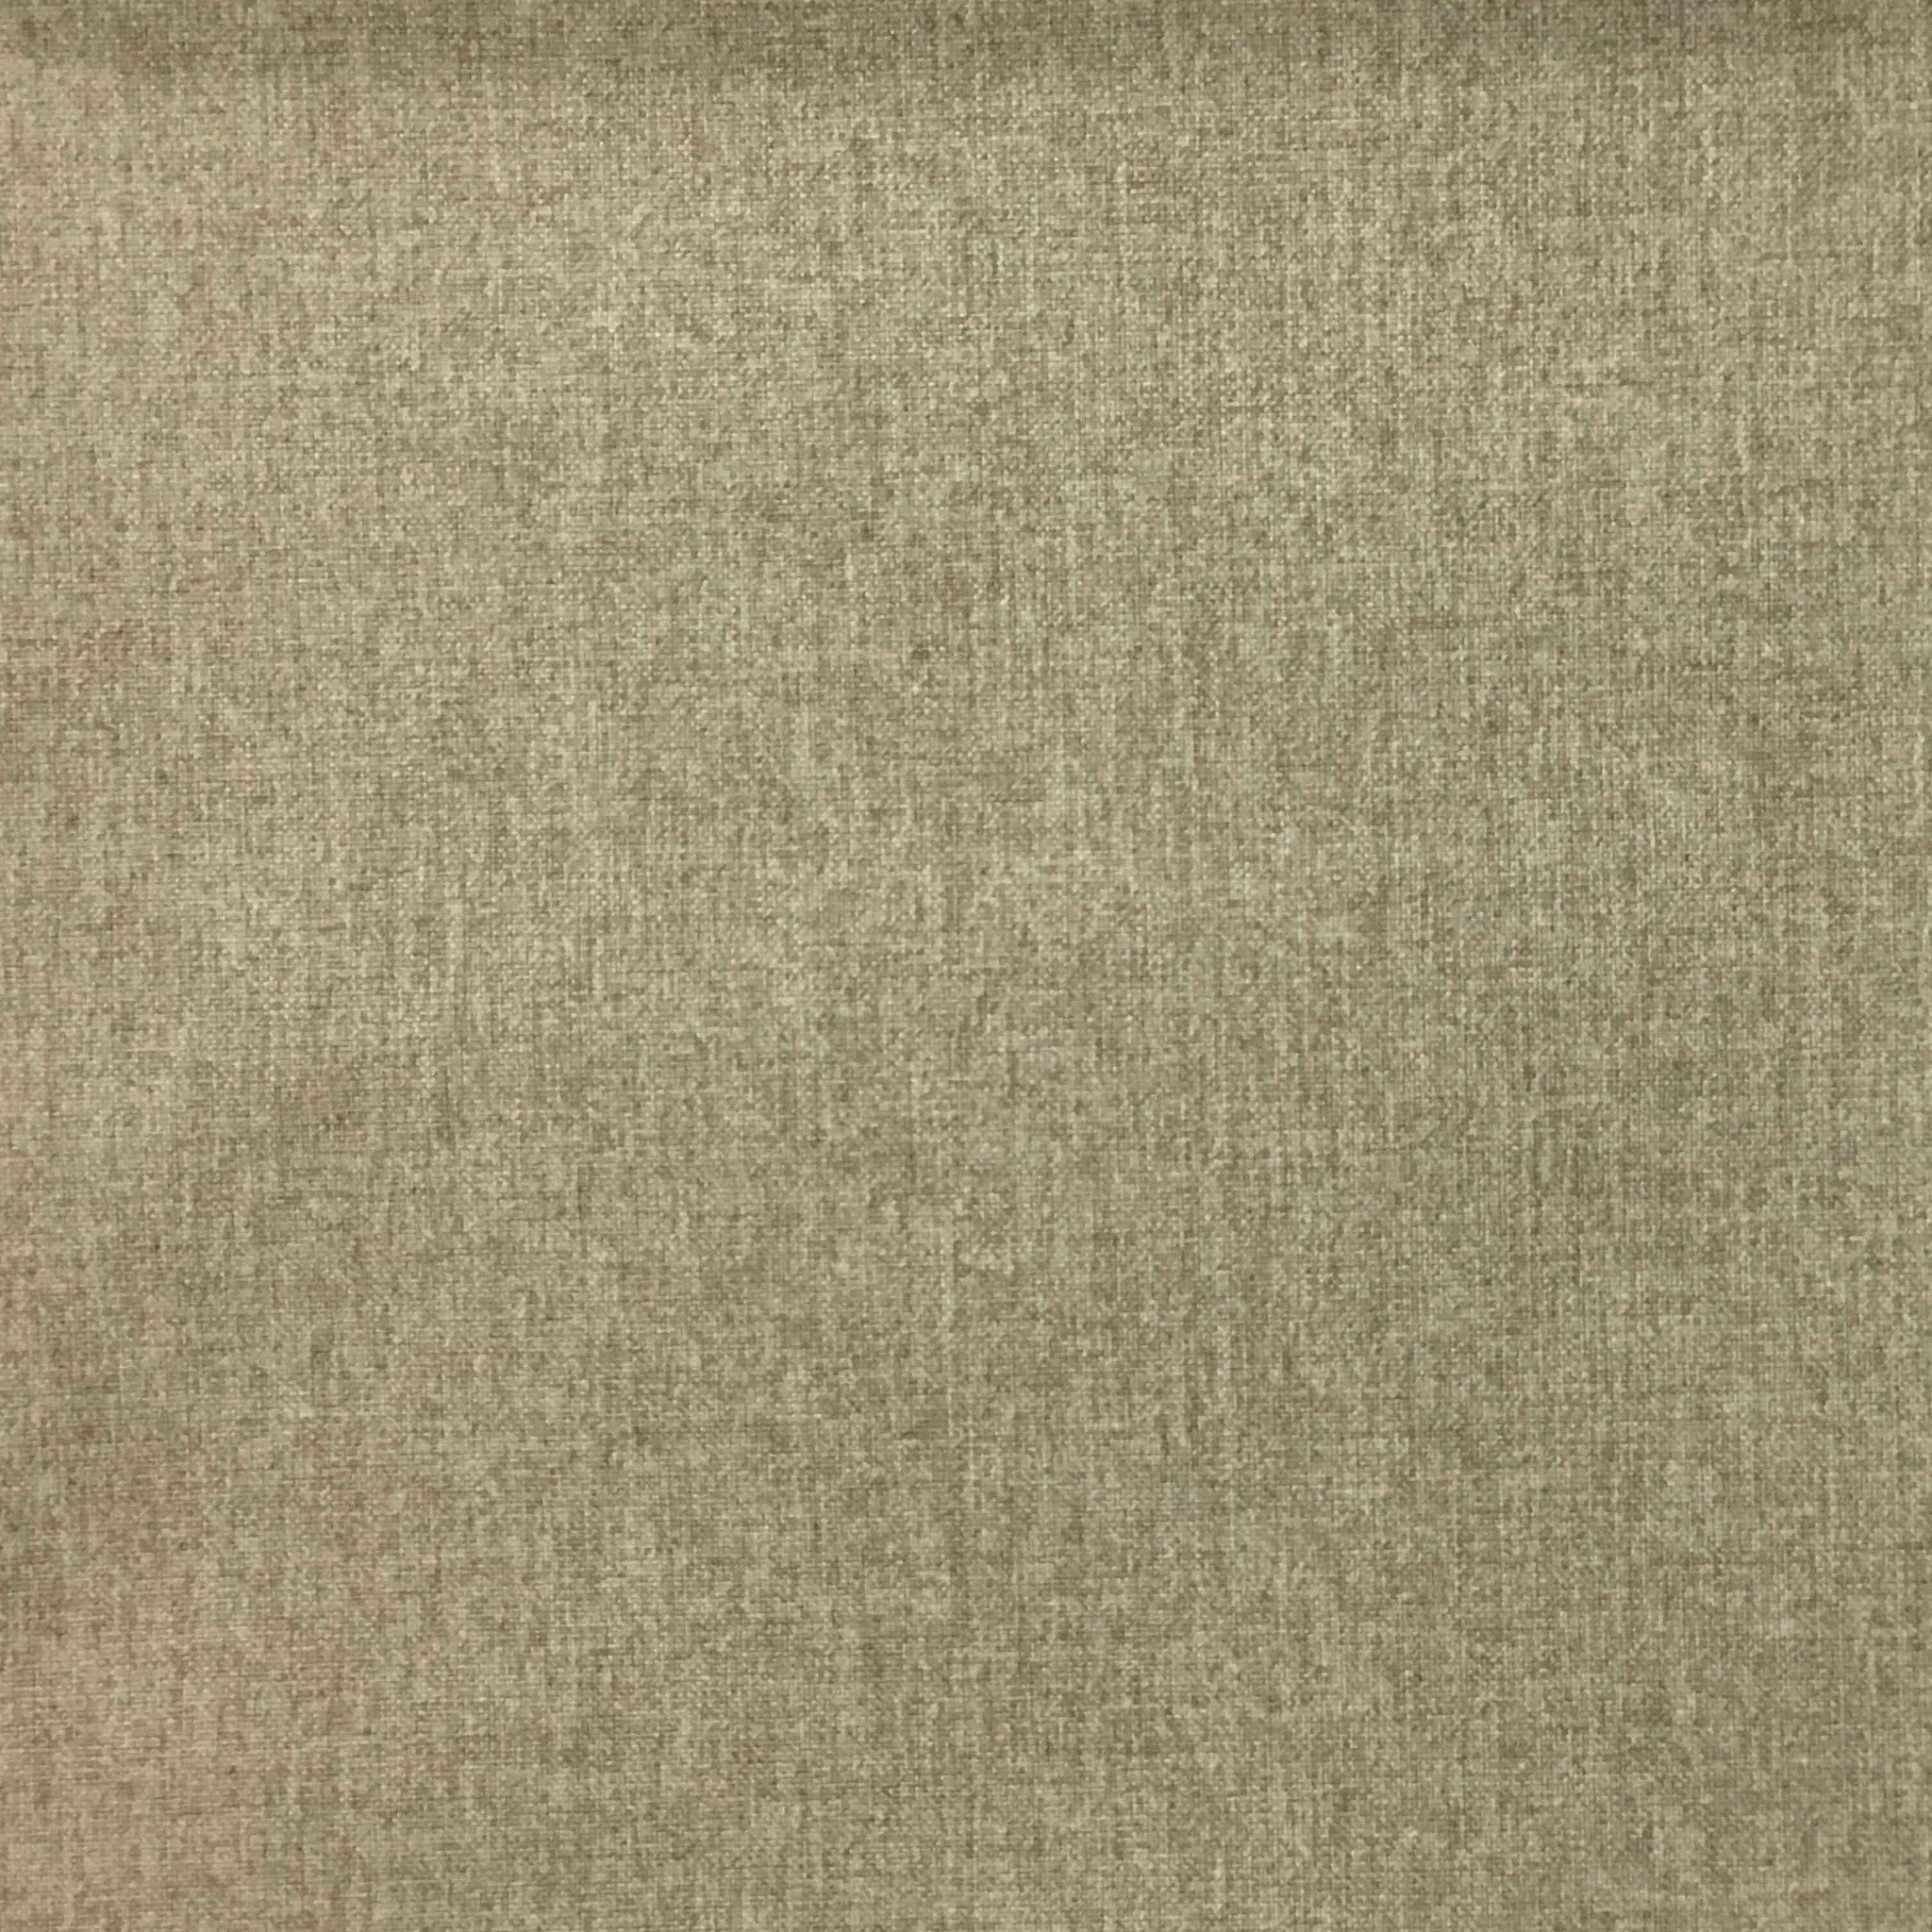 Lora Brushed Polyester Faux Linen Upholstery Fabric By The Yard